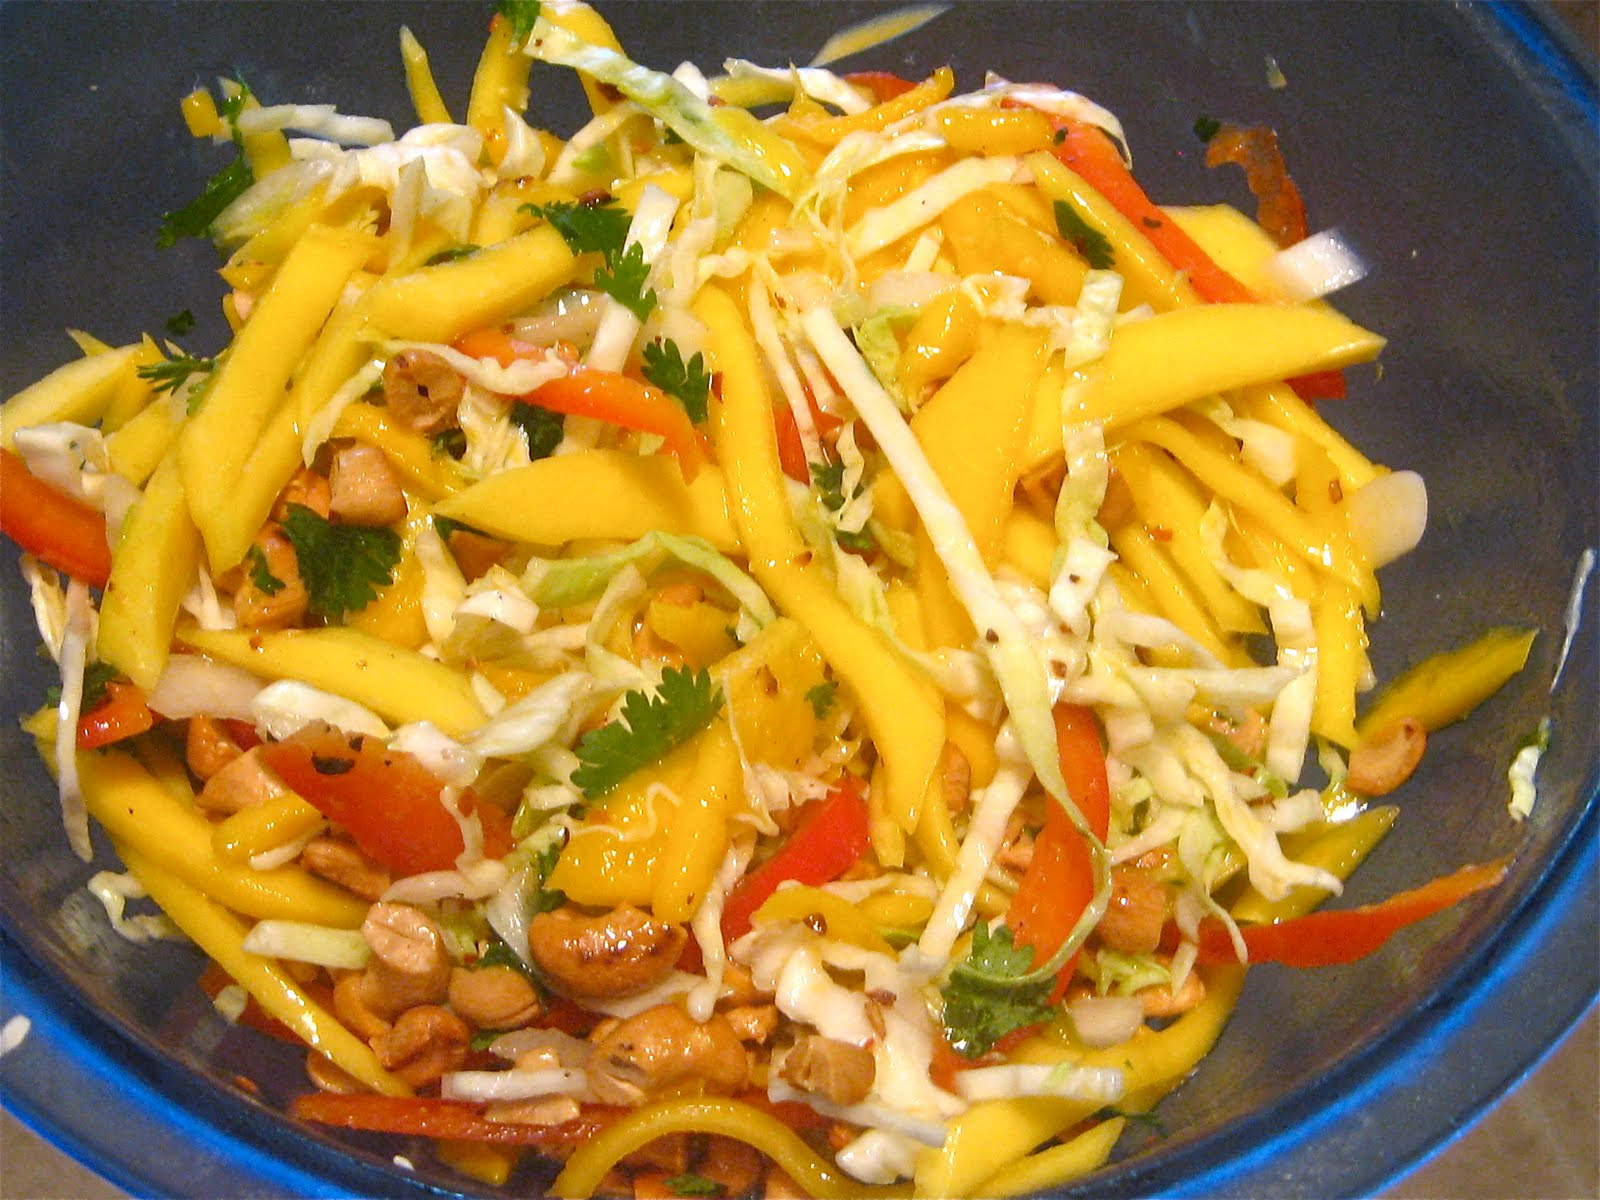 Mangoes & Lemons: Mango Slaw with Cashews and Mint (or Cilantro)